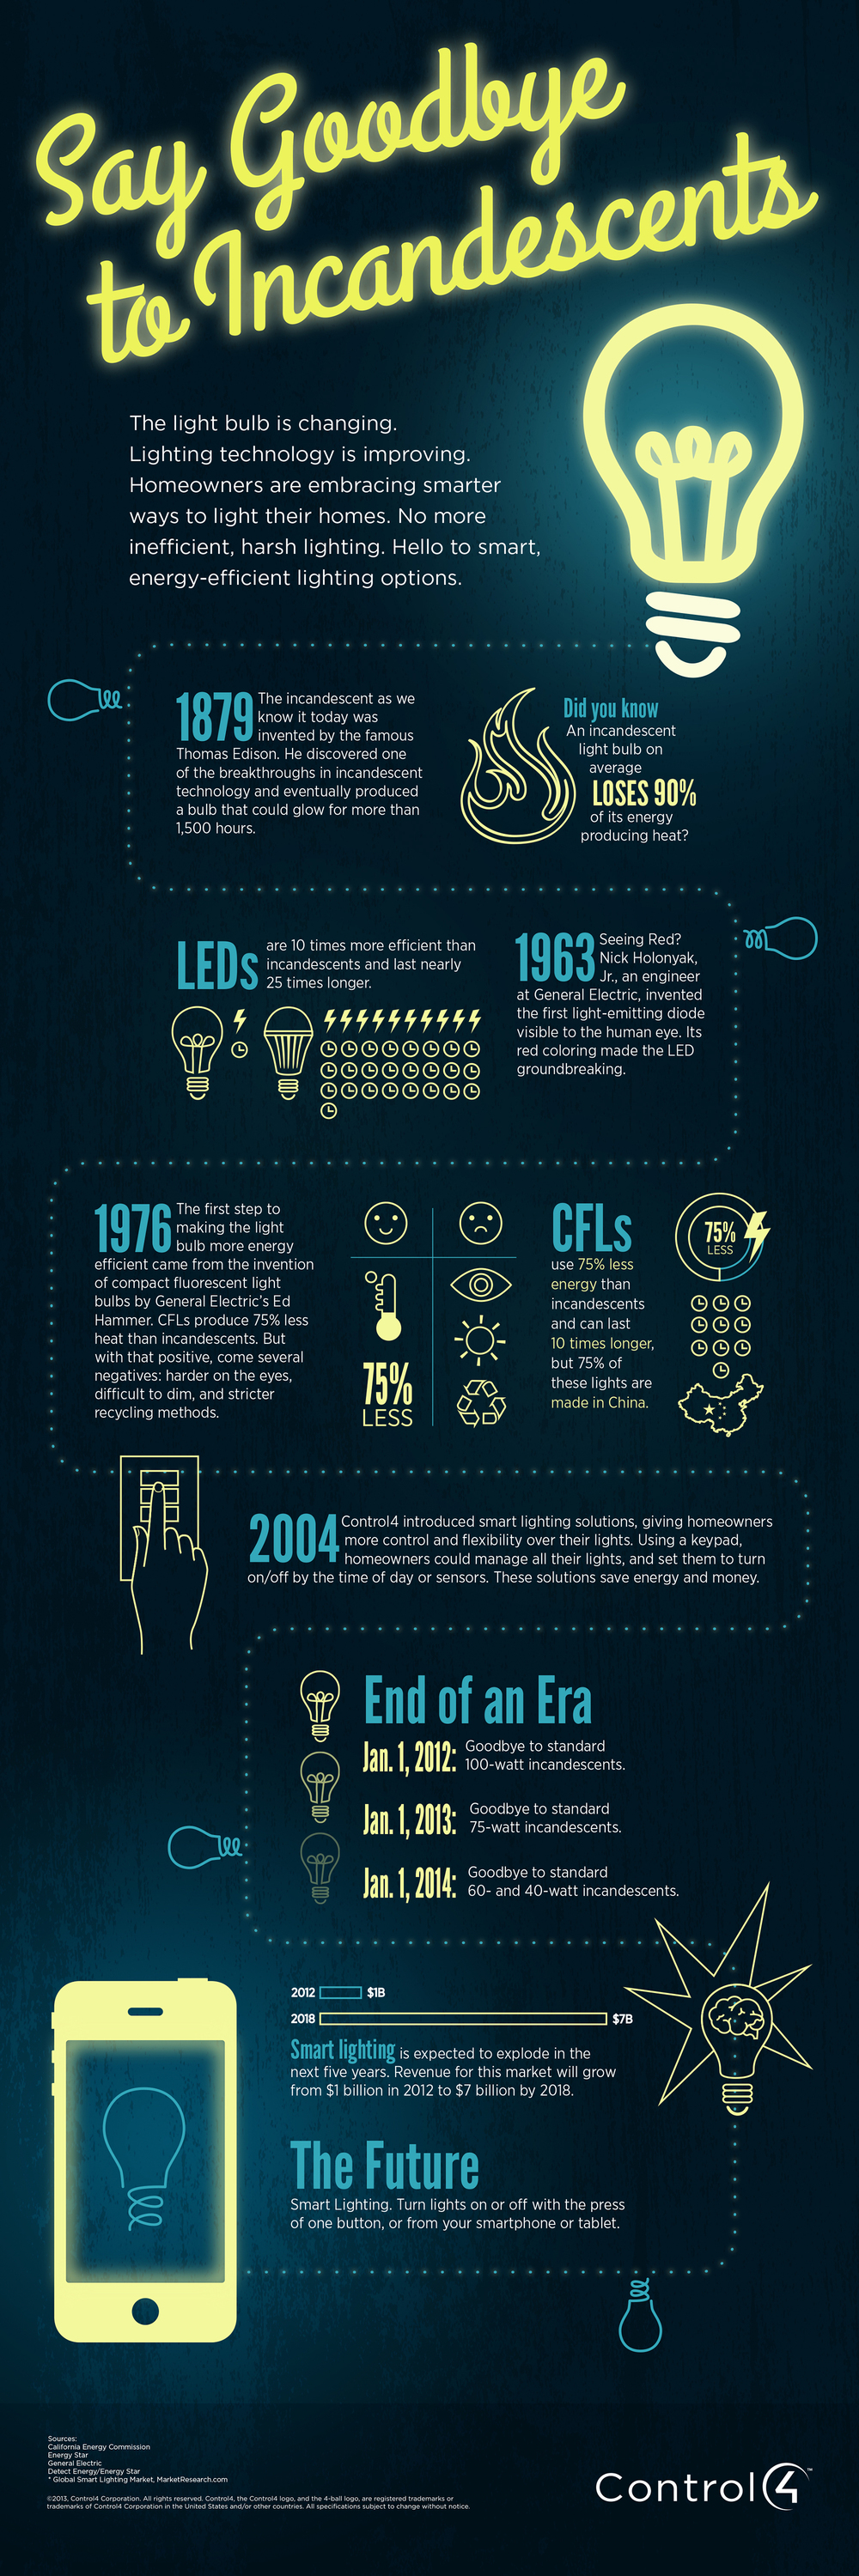 Lighting_Infographic_Final.jpg